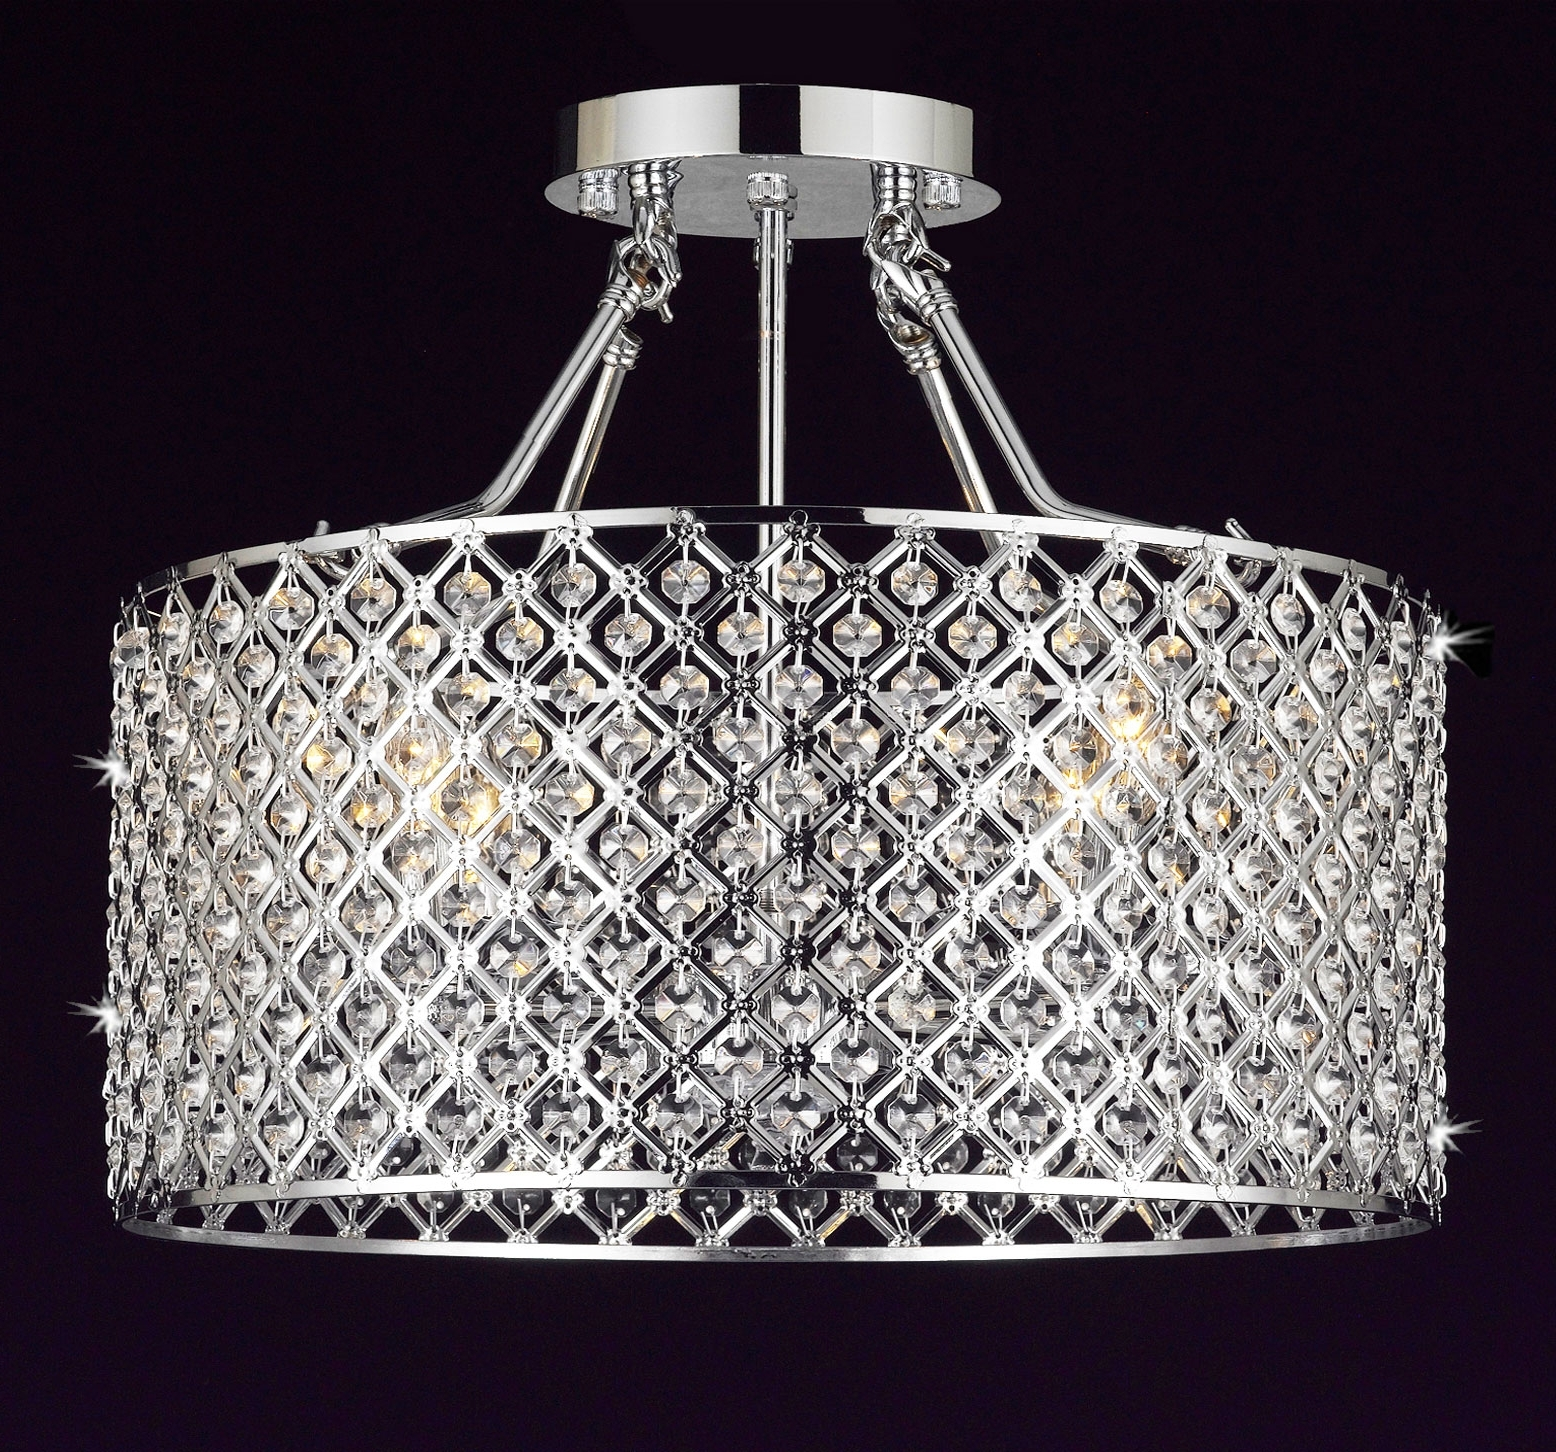 Best And Newest 4 Light Chrome Crystal Chandeliers Pertaining To G7 B12/white/2130/4 Gallery Chandeliers Flushmount 4 Light Chrome (View 12 of 20)